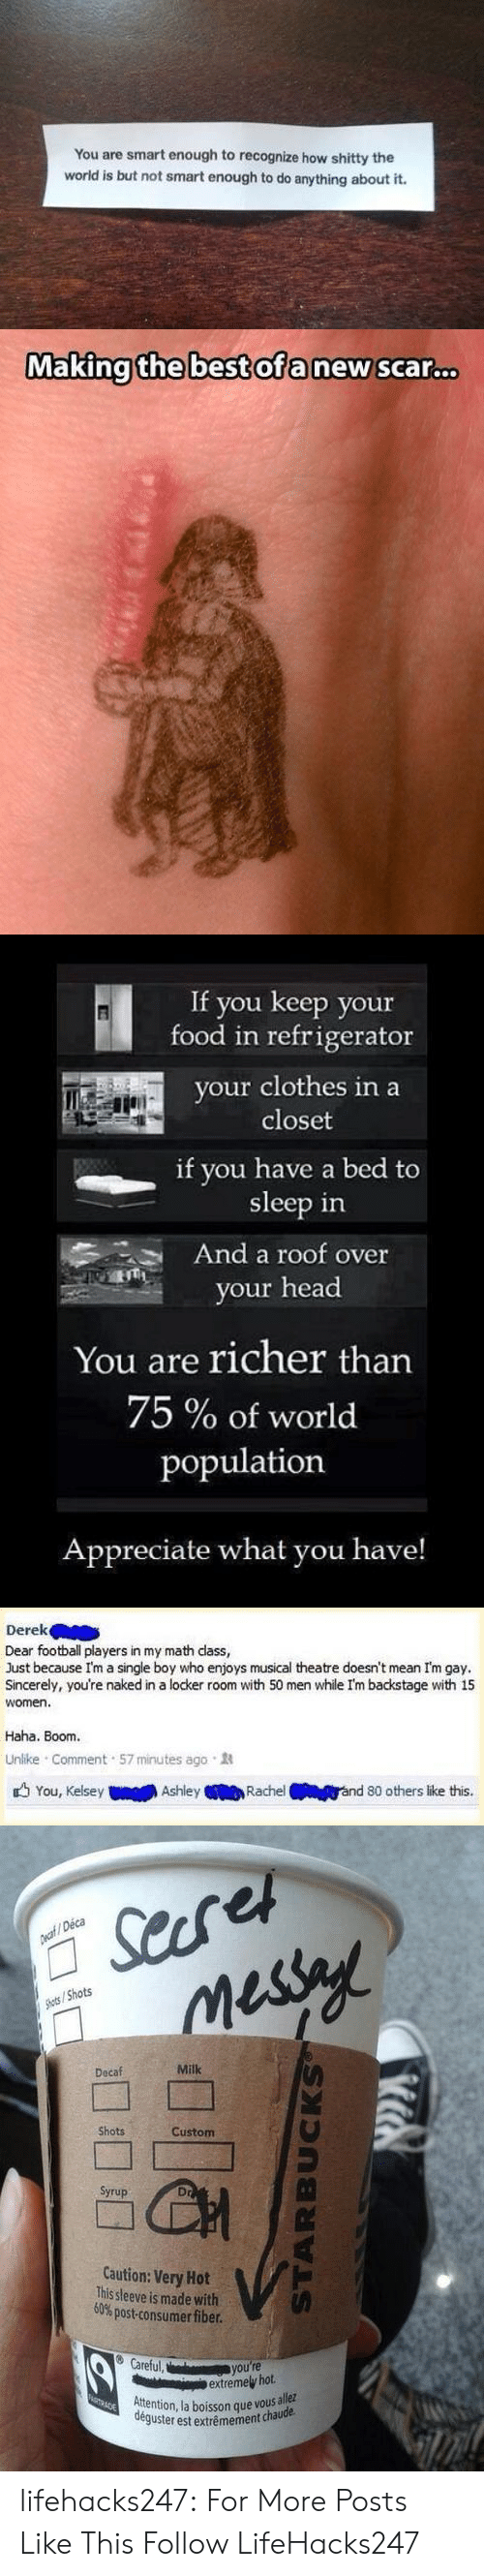 deca: You are smart enough to recognize how shitty the  world is but not smart enough to do anything about it.   Making the best ofa new sca.c..   If you keep your  food in refrigerator  your clothes in a  closet  if you have a bed to  sleep in  And a roof over  your head  You are richer than  75 % of world  population  Appreciate what you have!   Derek  Dear football players in my math dass,  Just because I'm a single boy who enjoys musical theatre doesn't mean Im gay.  Sincerely, you're naked in a locker room with 50 men while I'm backstage with 15  women.  Haha. Boom.  Unlike Comment 57 minutes ago  You, Kelsey  Ashley  Rachel  ánd 80 others like this.   Searet  messy  Decaf/Deca  Shots/Shots  Decaf  Milk  Shots  Custom  Syrup  Caution: Very Hot  This sleeve is made with  60% post-consumer fiber.  VG  Careful,  you're  extremely hot.  Attention, la boisson que vous allez  deguster est extrêmement chaude  PSTRADE  STARBUCKS lifehacks247:    For More Posts Like This Follow LifeHacks247